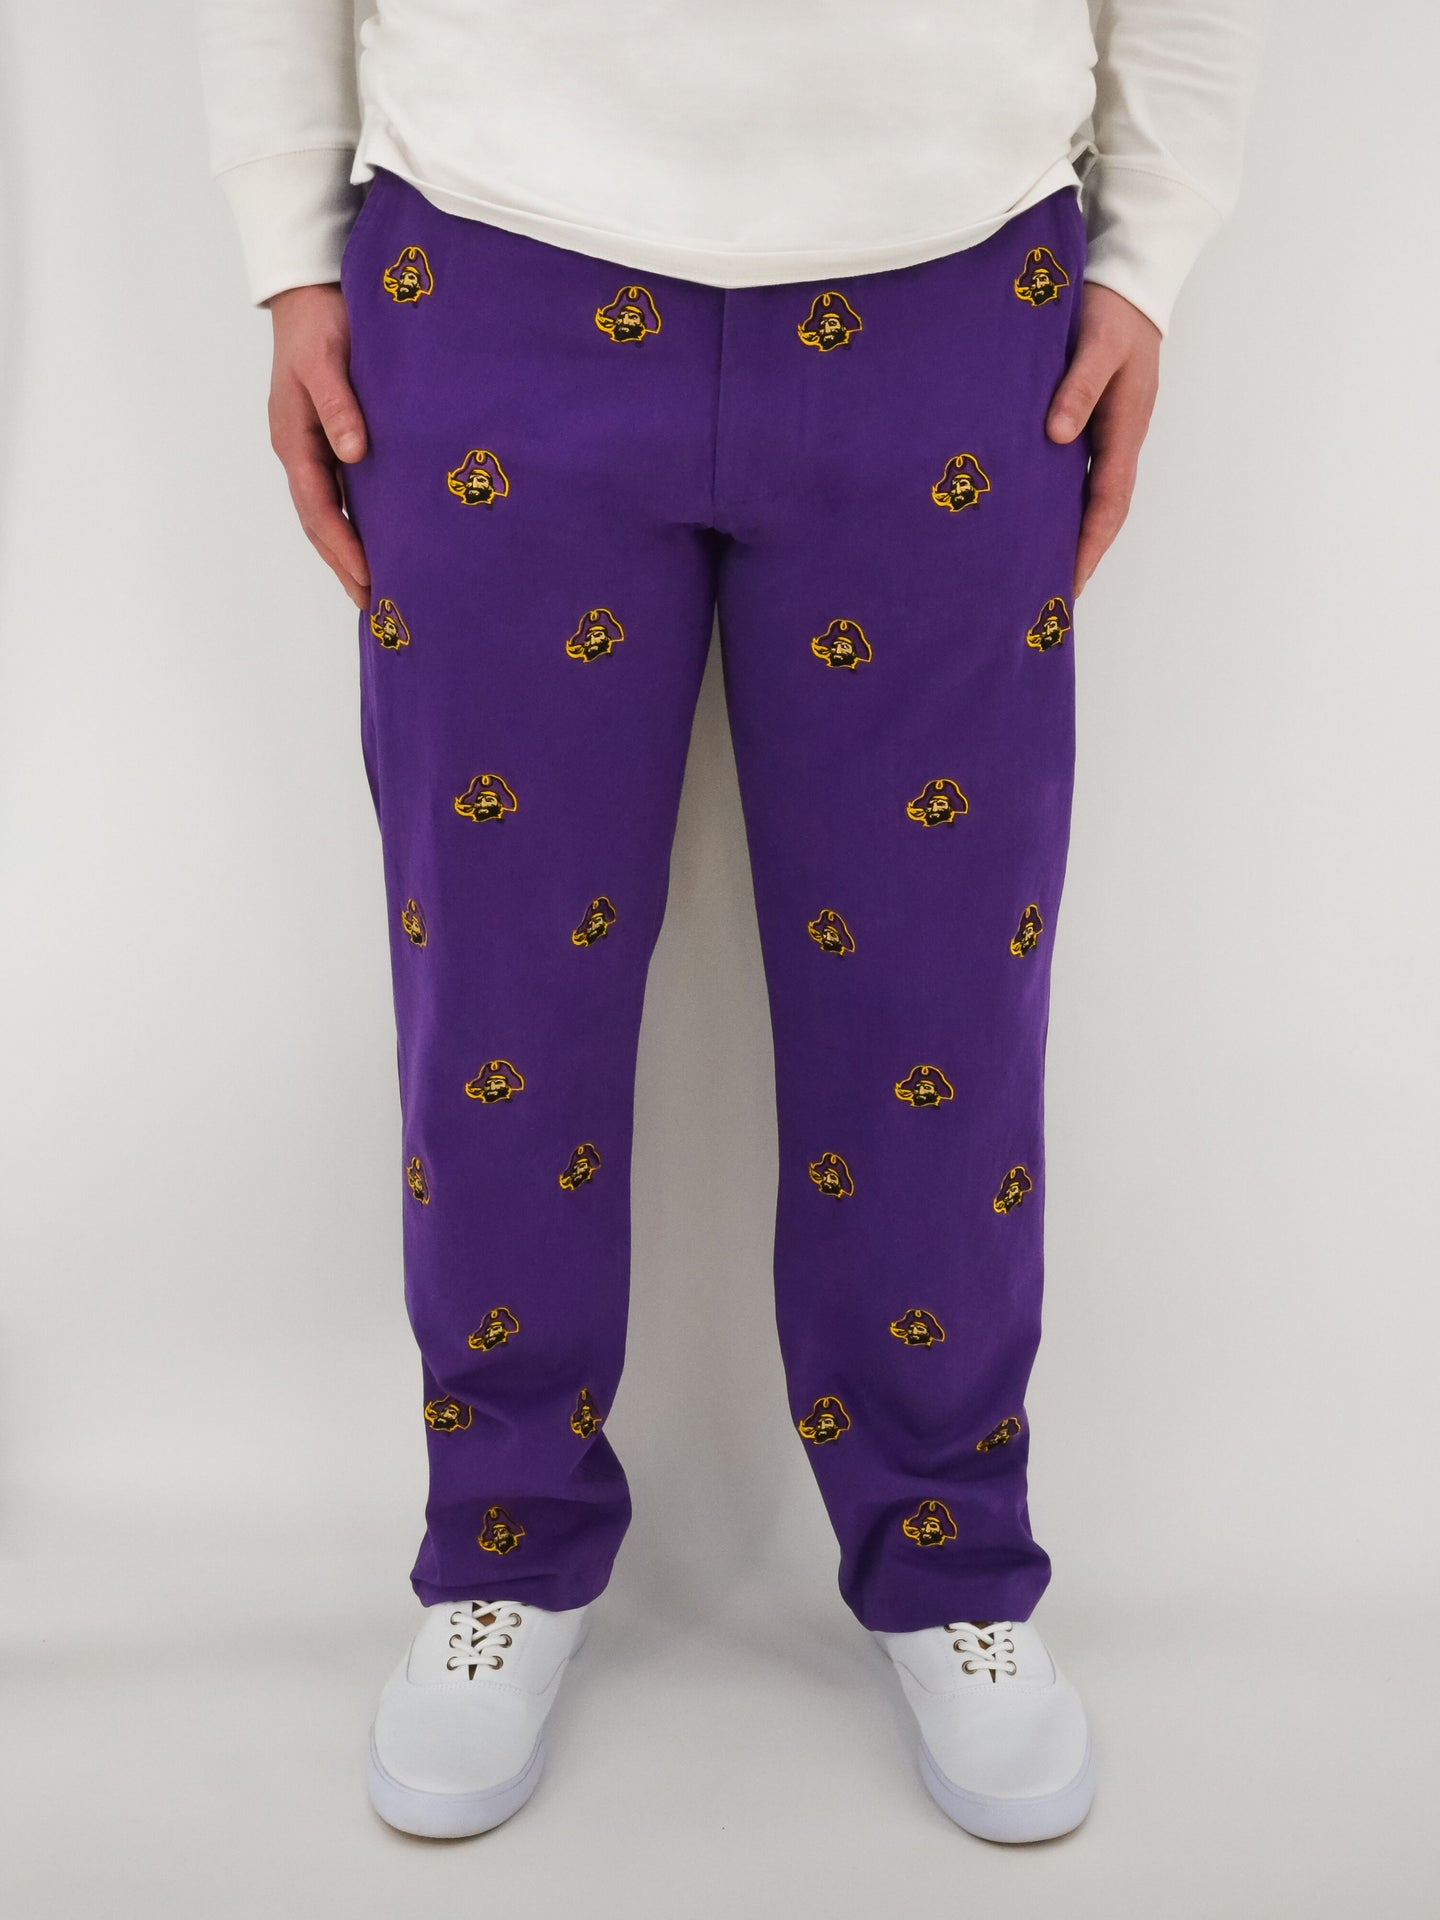 ECU Pirate Purple Pants